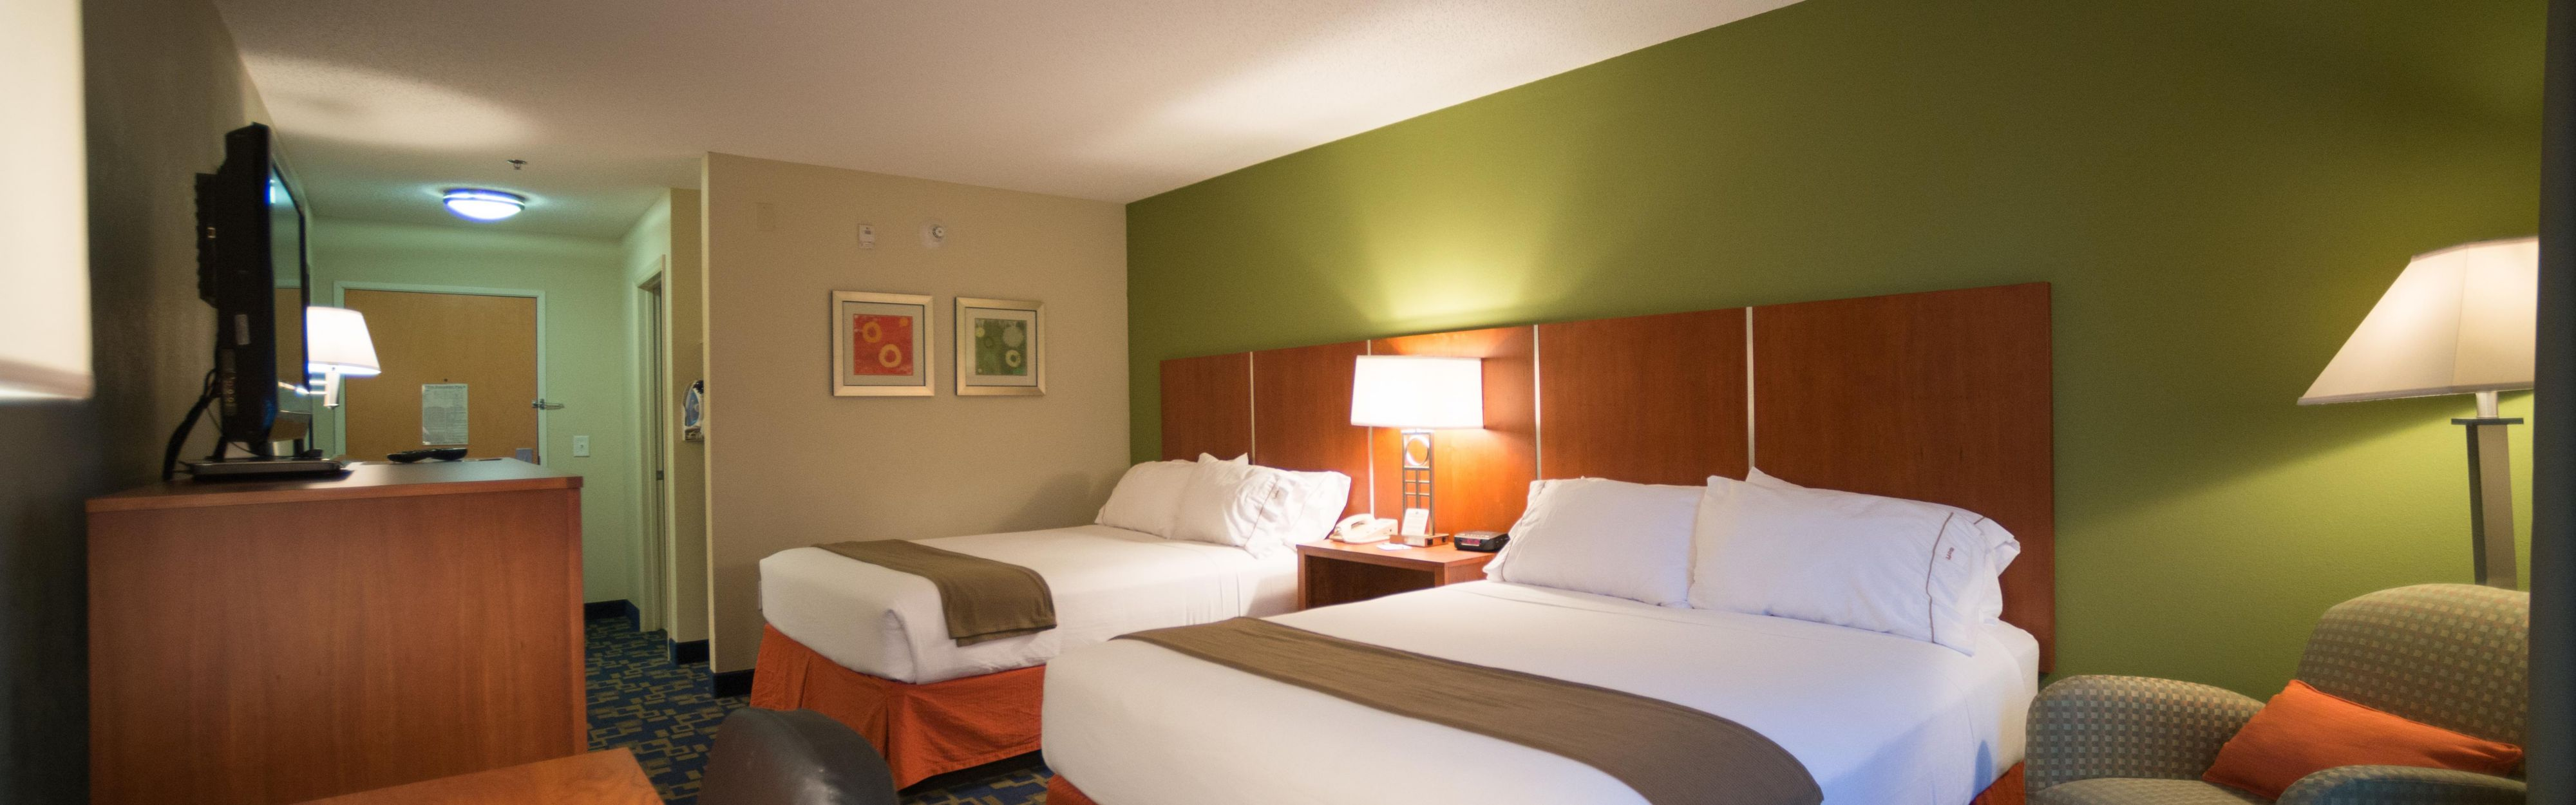 Holiday Inn Express & Suites Raleigh North - Wake Forest image 1